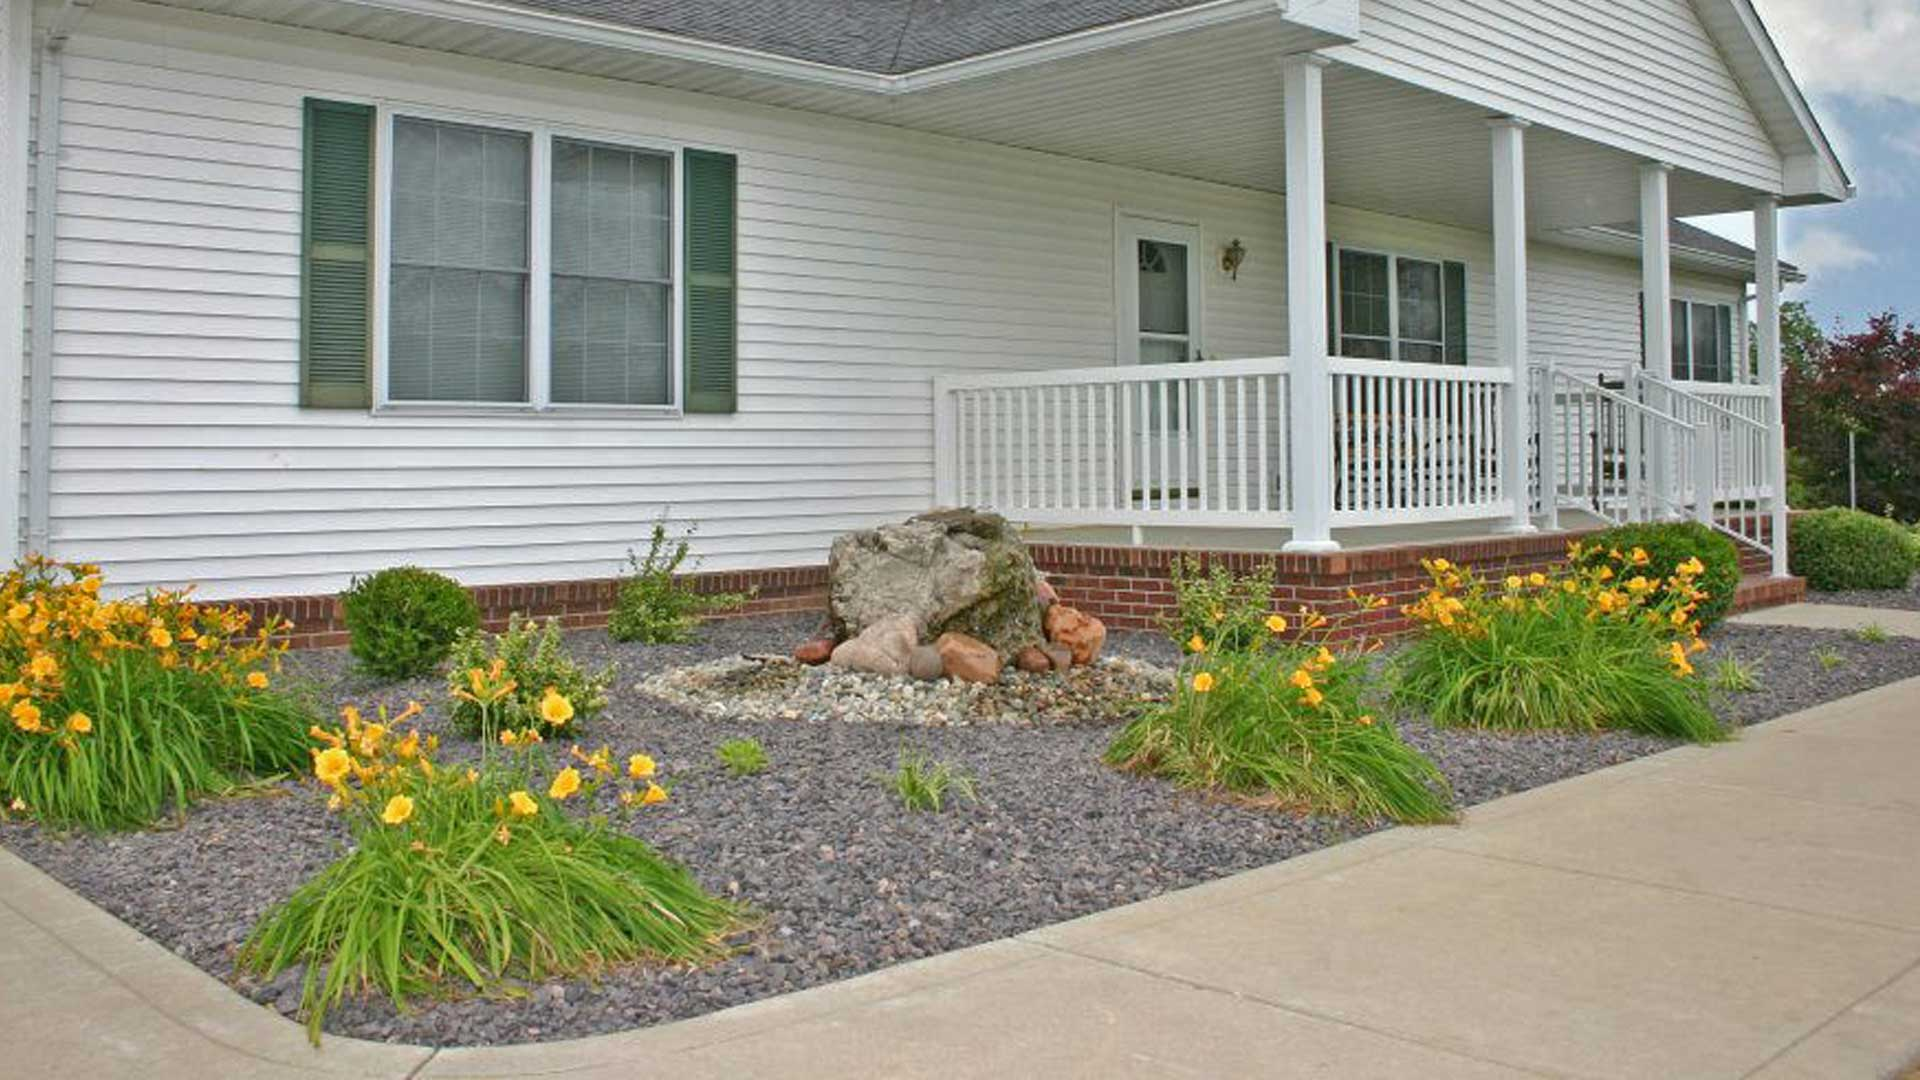 New landscaping - curbing, plants, shrubs, and rock at Alton, IL home.